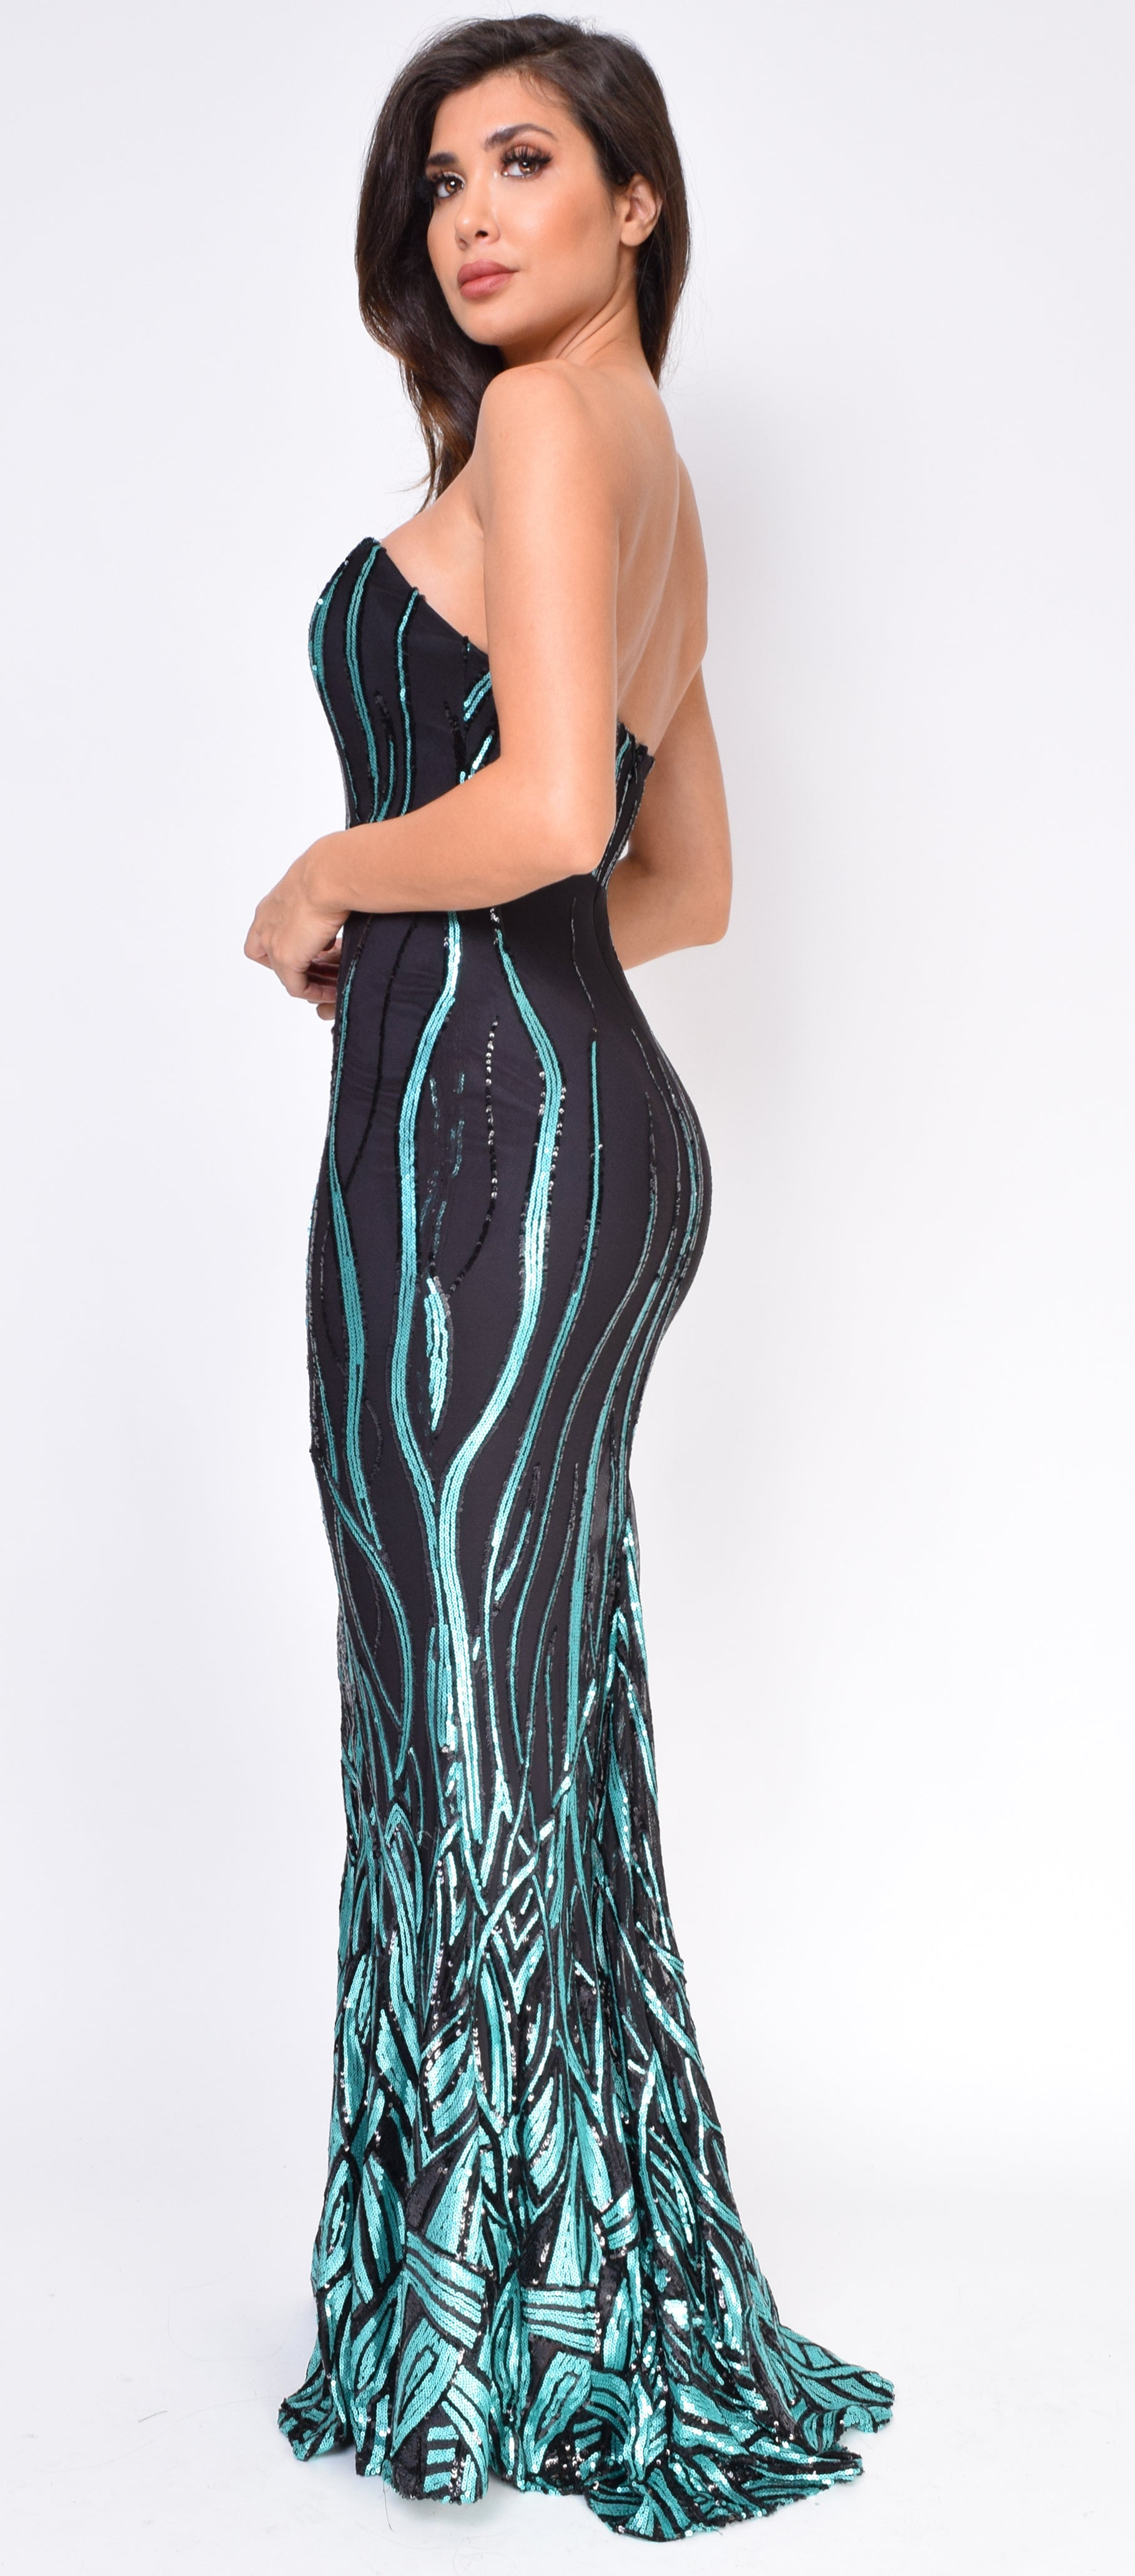 Dalla Black Teal Sequin Gown - Emprada